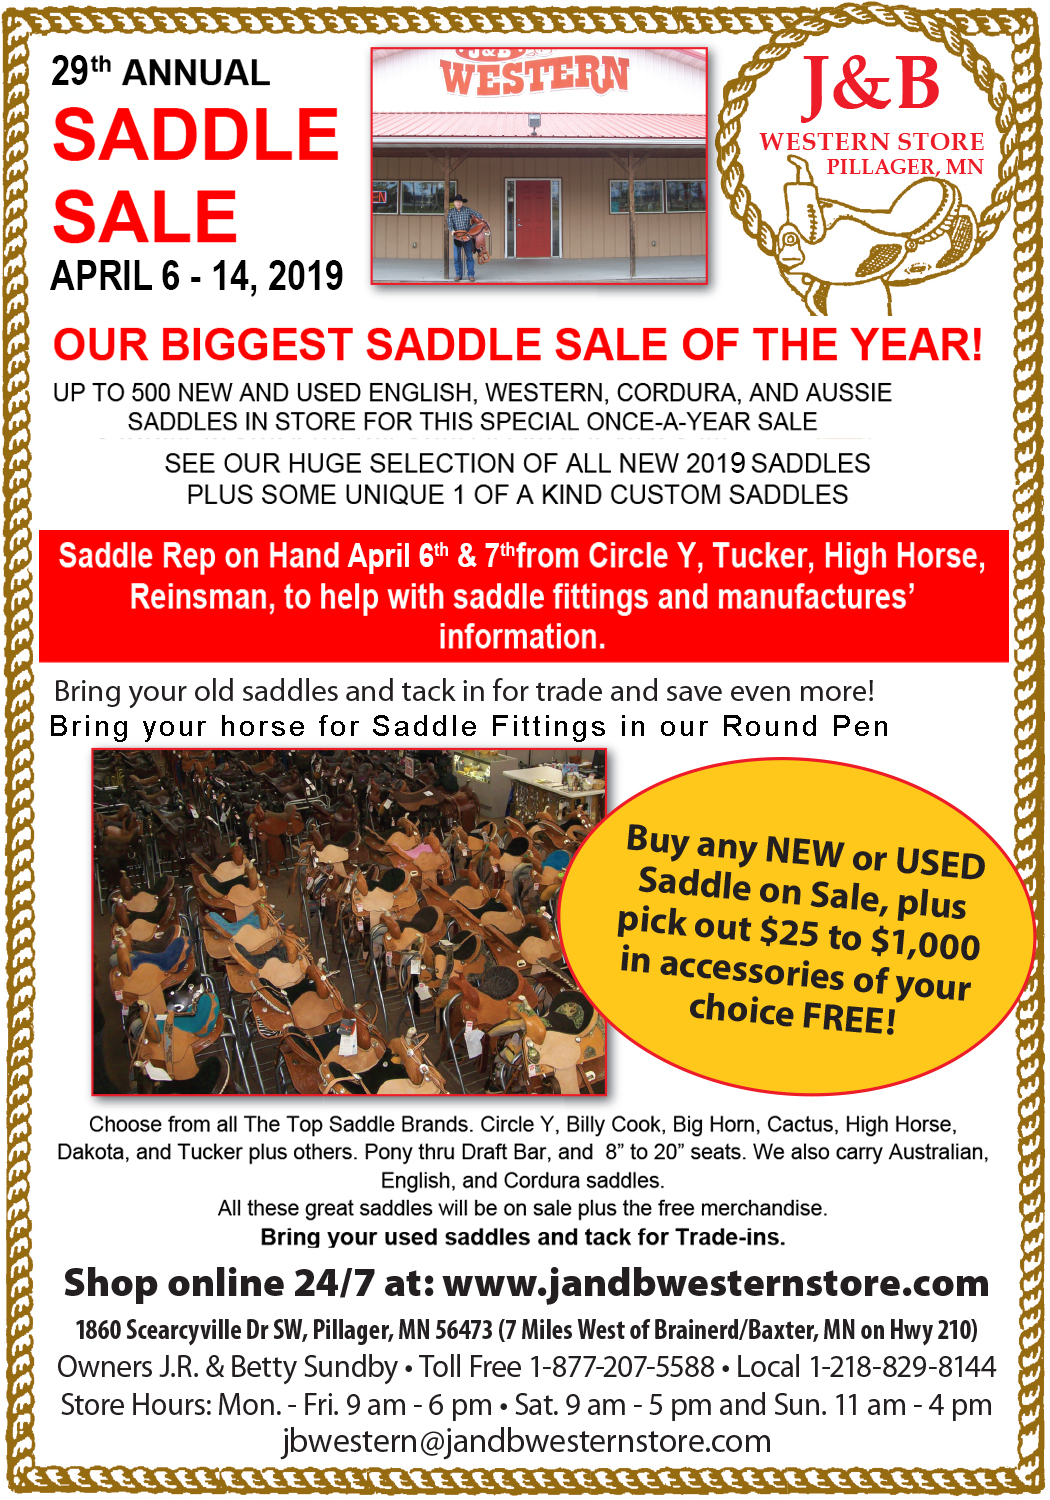 2019 Saddle Sale Ad.jpg